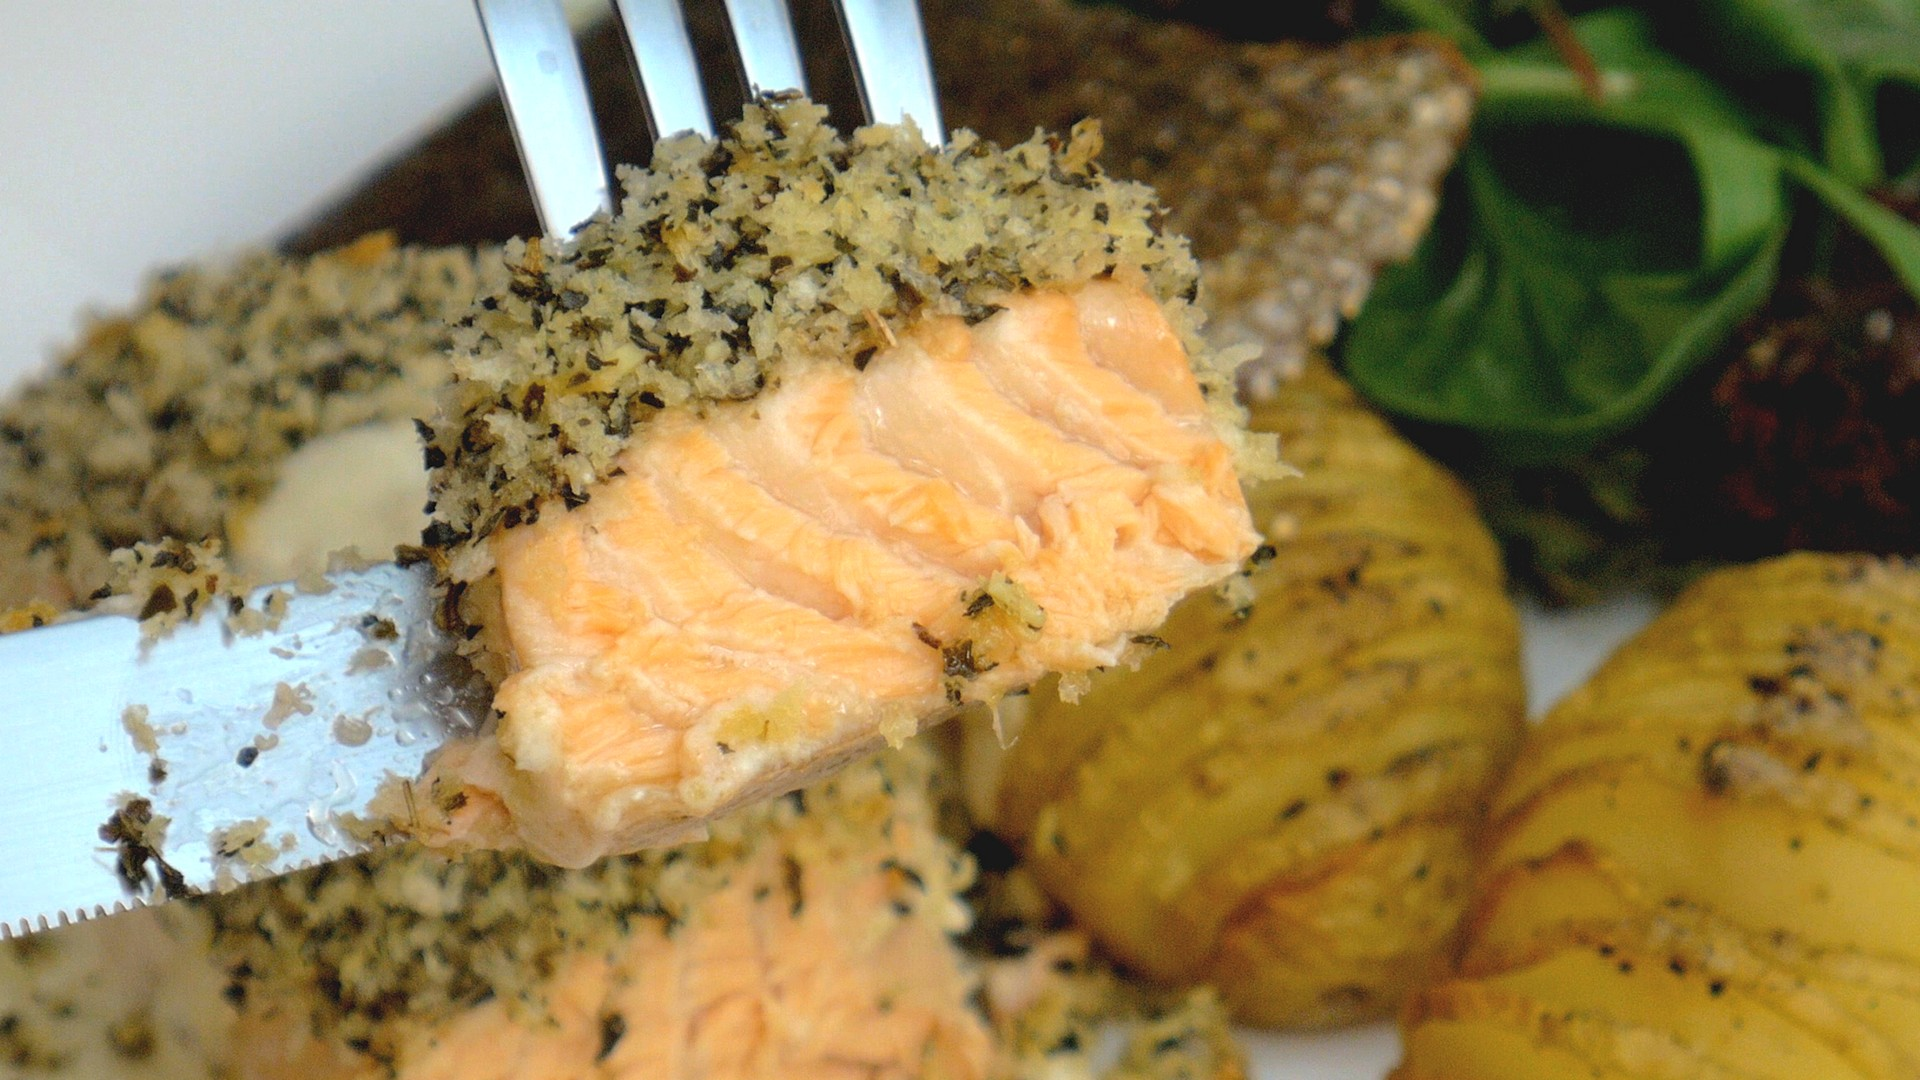 S1E3 Herbs Crusted Salmon Take 6